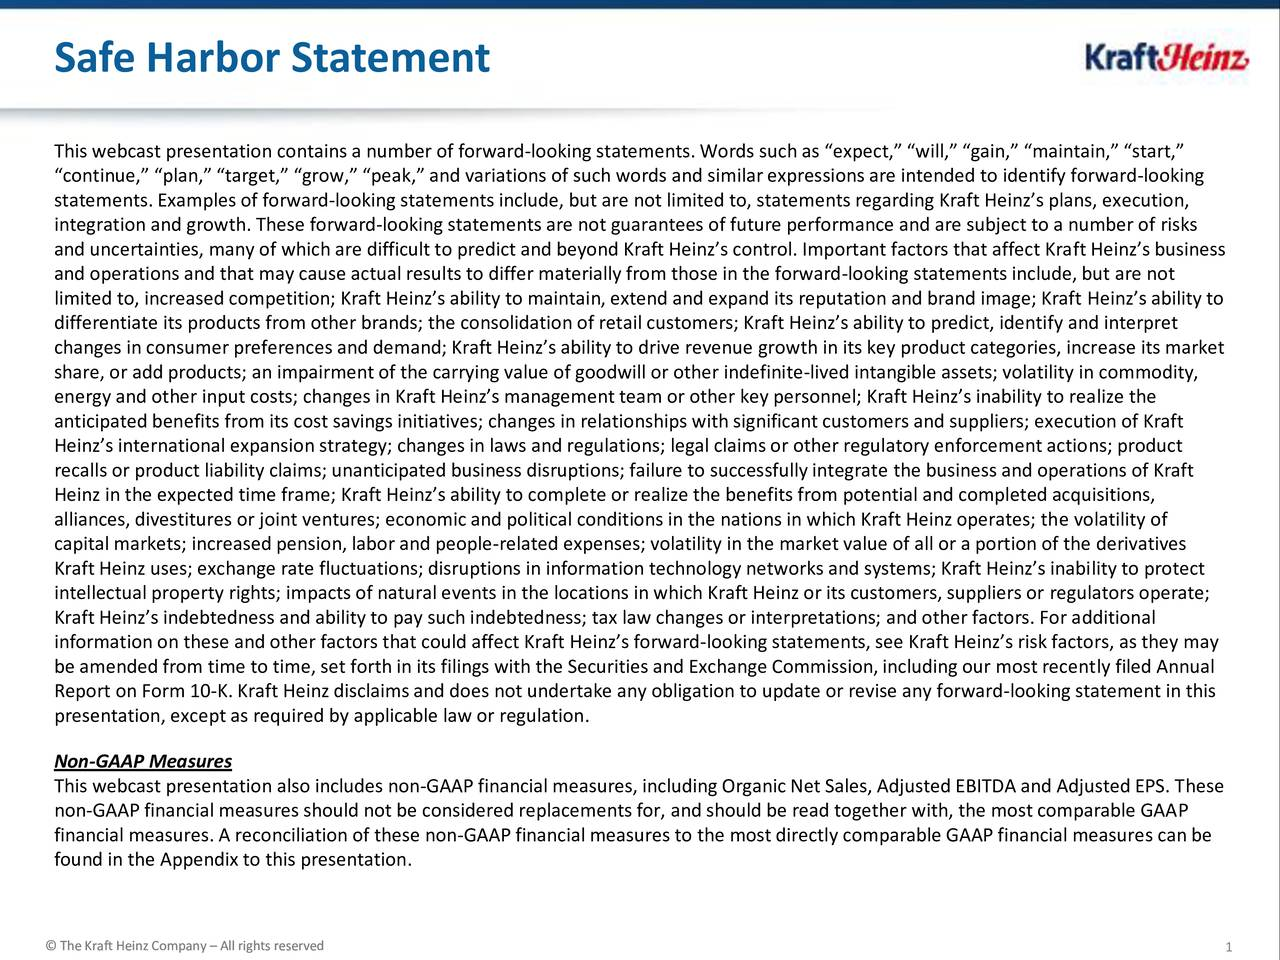 This webcast presentation contains a number of forward-looking statements. Words such as expect, will, gain, maintain, start, continue, plan, target, grow, peak, and variations of such words and similar expressions are intended to identify forward-looking statements. Examples of forward-looking statements include, but are not limited to, statements regarding Kraft Heinzs plans, execution, integration and growth. These forward-looking statements are not guarantees of future performance and are subject to a number of risks and uncertainties, many of which are difficult to predict and beyond Kraft Heinzs control. Important factors that affect Kraft Heinzs business and operations and that may cause actual results to differ materially from those in the forward-looking statements include, but are not limited to, increased competition; Kraft Heinzs ability to maintain, extend and expand its reputation and brand image; Kraft Heinzs ability to differentiate its products from other brands; the consolidation of retail customers; Kraft Heinzs ability to predict, identify and interpret changes in consumer preferences and demand; Kraft Heinzs ability to drive revenue growth in its key product categories, increase its market share, or add products; an impairment of the carrying value of goodwill or other indefinite-lived intangible assets; volatility in commodity, energy and other input costs; changes in Kraft Heinzs management team or other key personnel; Kraft Heinzs inability to realize the anticipated benefits from its cost savings initiatives; changes in relationships with significant customers and suppliers; execution of Kraft Heinzs international expansion strategy; changes in laws and regulations; legal claims or other regulatory enforcement actions; product recalls or product liability claims; unanticipated business disruptions; failure to successfully integrate the business and operations of Kraft Heinz in the expected time frame; Kraft Heinzs ability to complete or realize the benefits from potential and completed acquisitions, alliances, divestitures or joint ventures; economic and political conditions in the nations in which Kraft Heinz operates; the volatility of capital markets; increased pension, labor and people-related expenses; volatility in the market value of all or a portion of the derivatives Kraft Heinz uses; exchange rate fluctuations; disruptions in information technology networks and systems; Kraft Heinzs inability to protect intellectual property rights; impacts of natural events in the locations in which Kraft Heinz or its customers, suppliers or regulators operate; Kraft Heinzs indebtedness and ability to pay such indebtedness; tax law changes or interpretations; and other factors. For additional information on these and other factors that could affect Kraft Heinzs forward-looking statements, see Kraft Heinzs risk factors, as they may be amended from time to time, set forth in its filings with the Securities and Exchange Commission,including our most recently filed Annual Report on Form 10-K. Kraft Heinz disclaims and does not undertake any obligation to update or revise any forward-looking statement in this presentation, except as required by applicable law or regulation. Non-GAAP Measures This webcast presentation also includes non-GAAP financial measures, including Organic Net Sales, Adjusted EBITDA and Adjusted EPS. These non-GAAP financial measures should not be considered replacements for, and should be read together with, the most comparable GAAP financial measures. A reconciliation of these non-GAAP financial measures to the most directly comparable GAAP financial measures can be found in the Appendix to this presentation. TheKraffHenz Company Allghts eseved